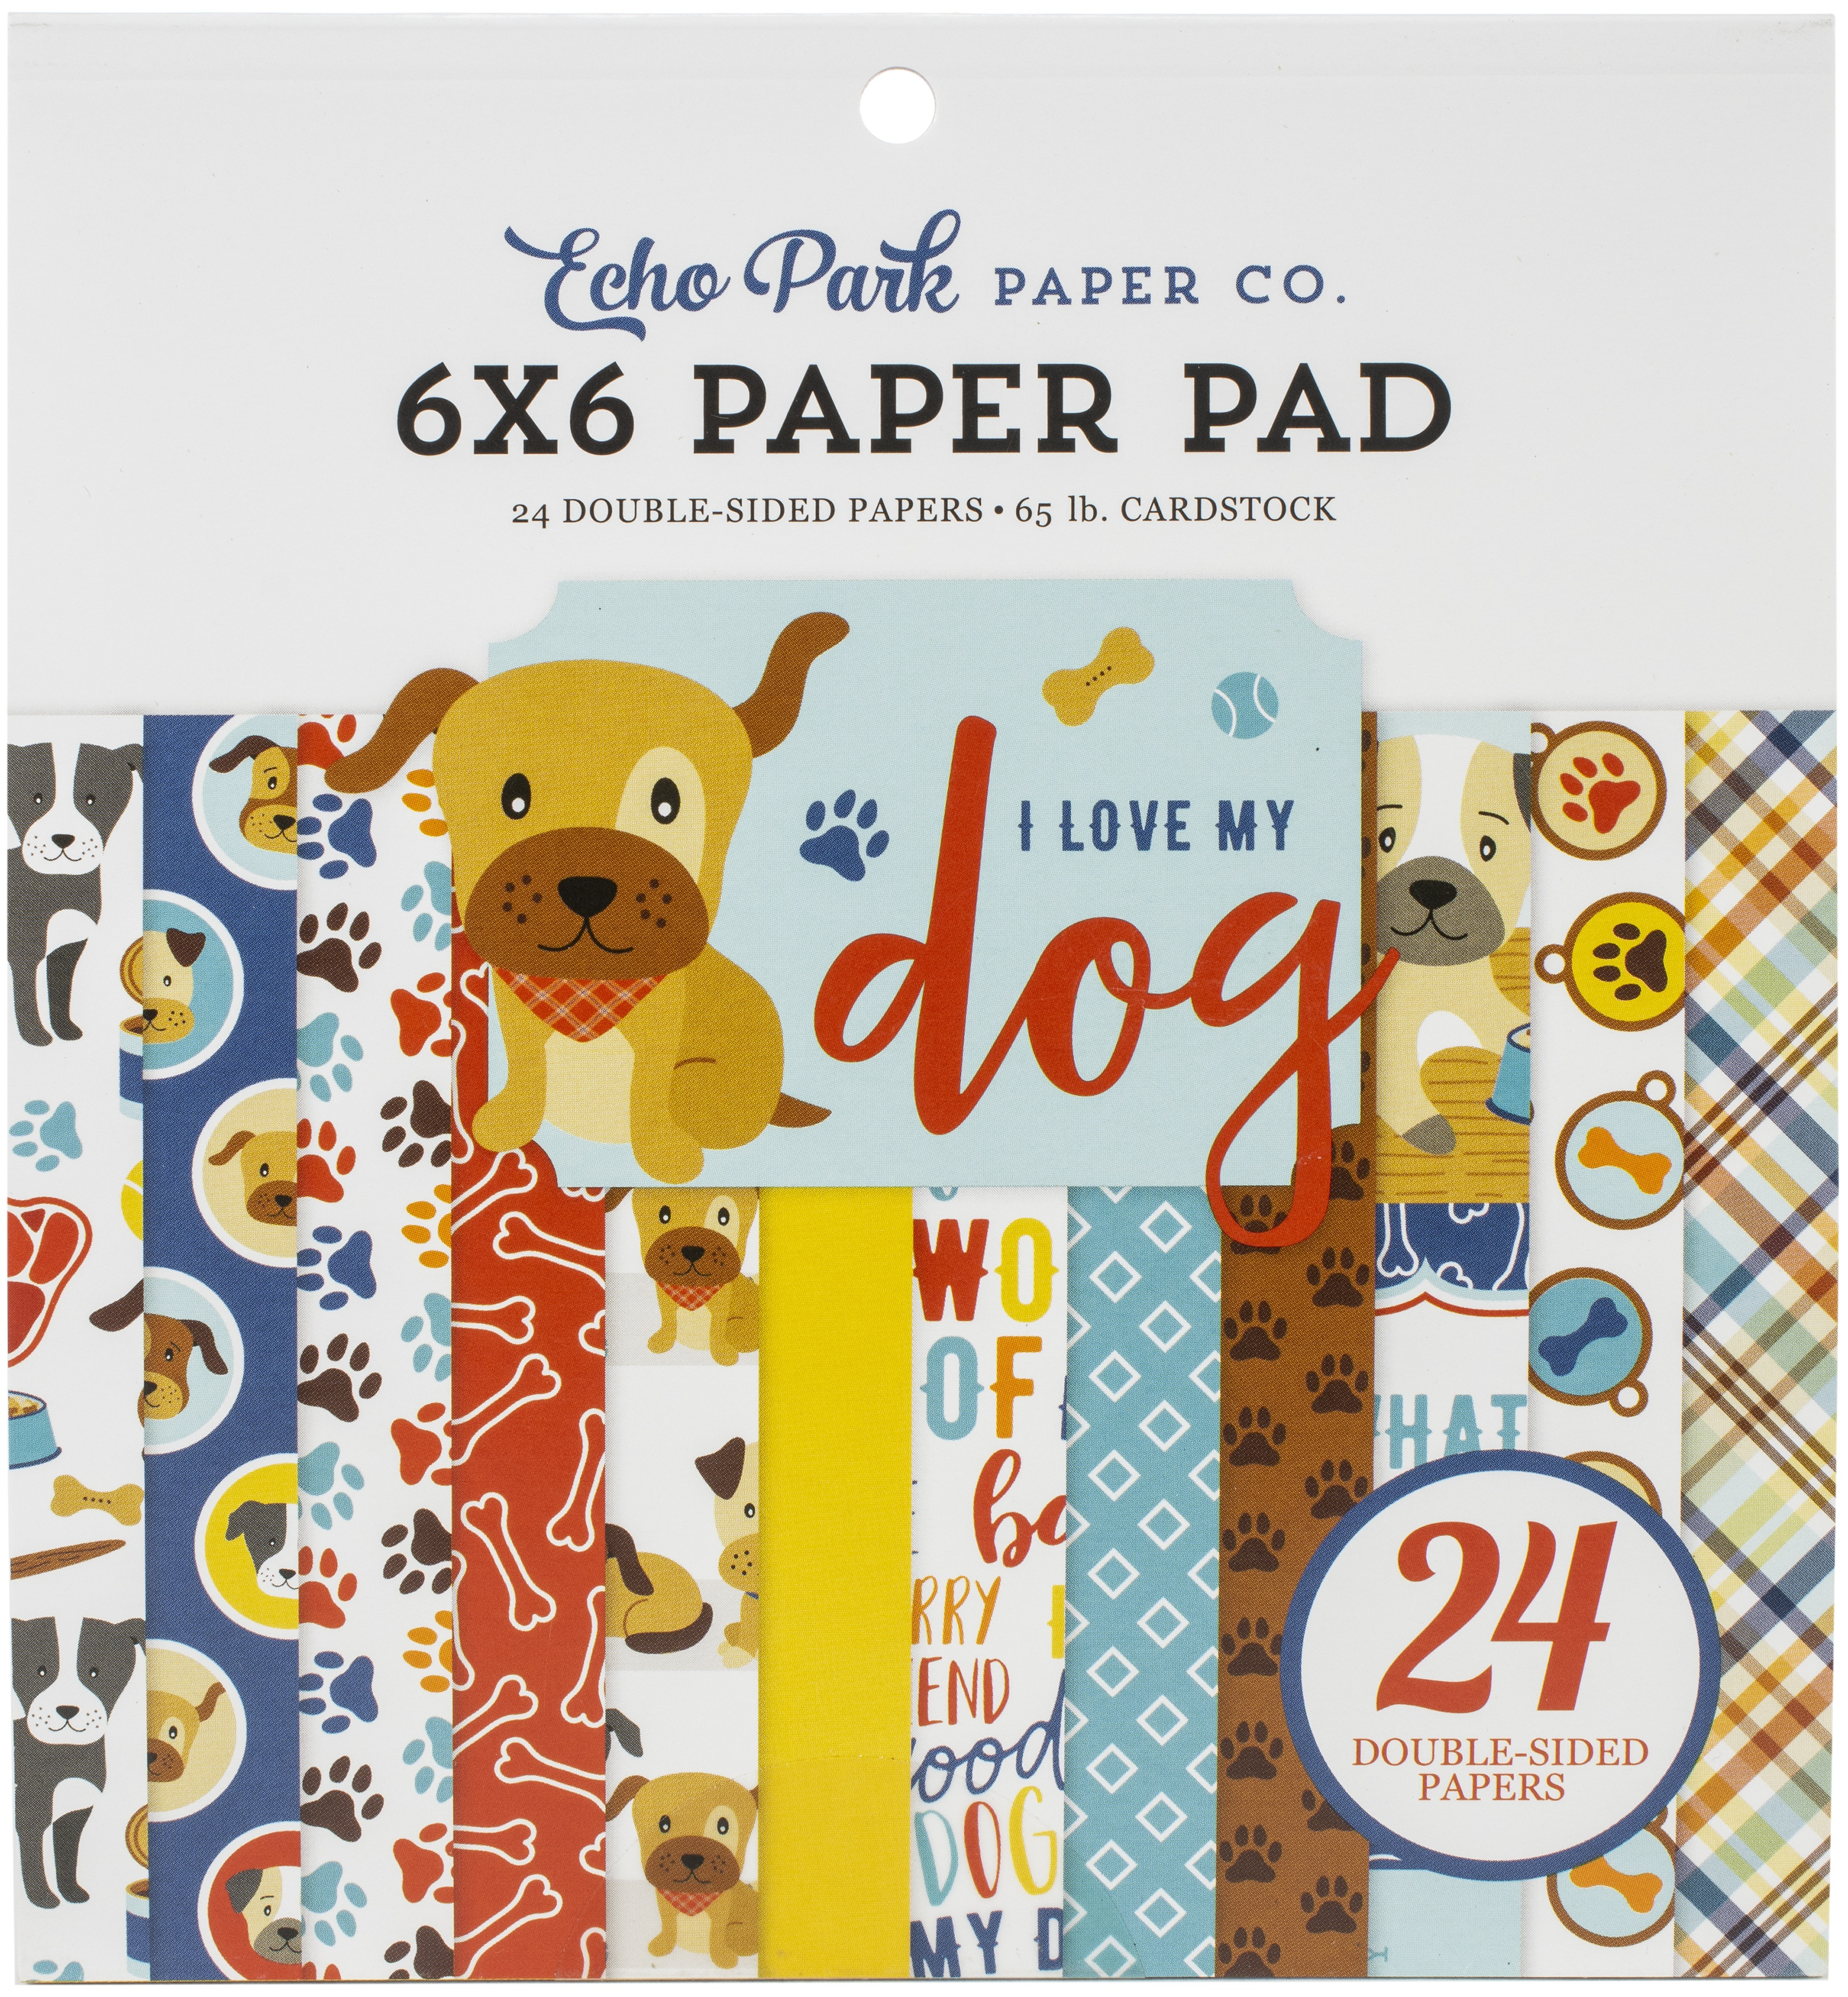 Echo Park Double-Sided Paper Pad 6X6 24/Pkg-I Love My Dog, 12 Designs/2 Each